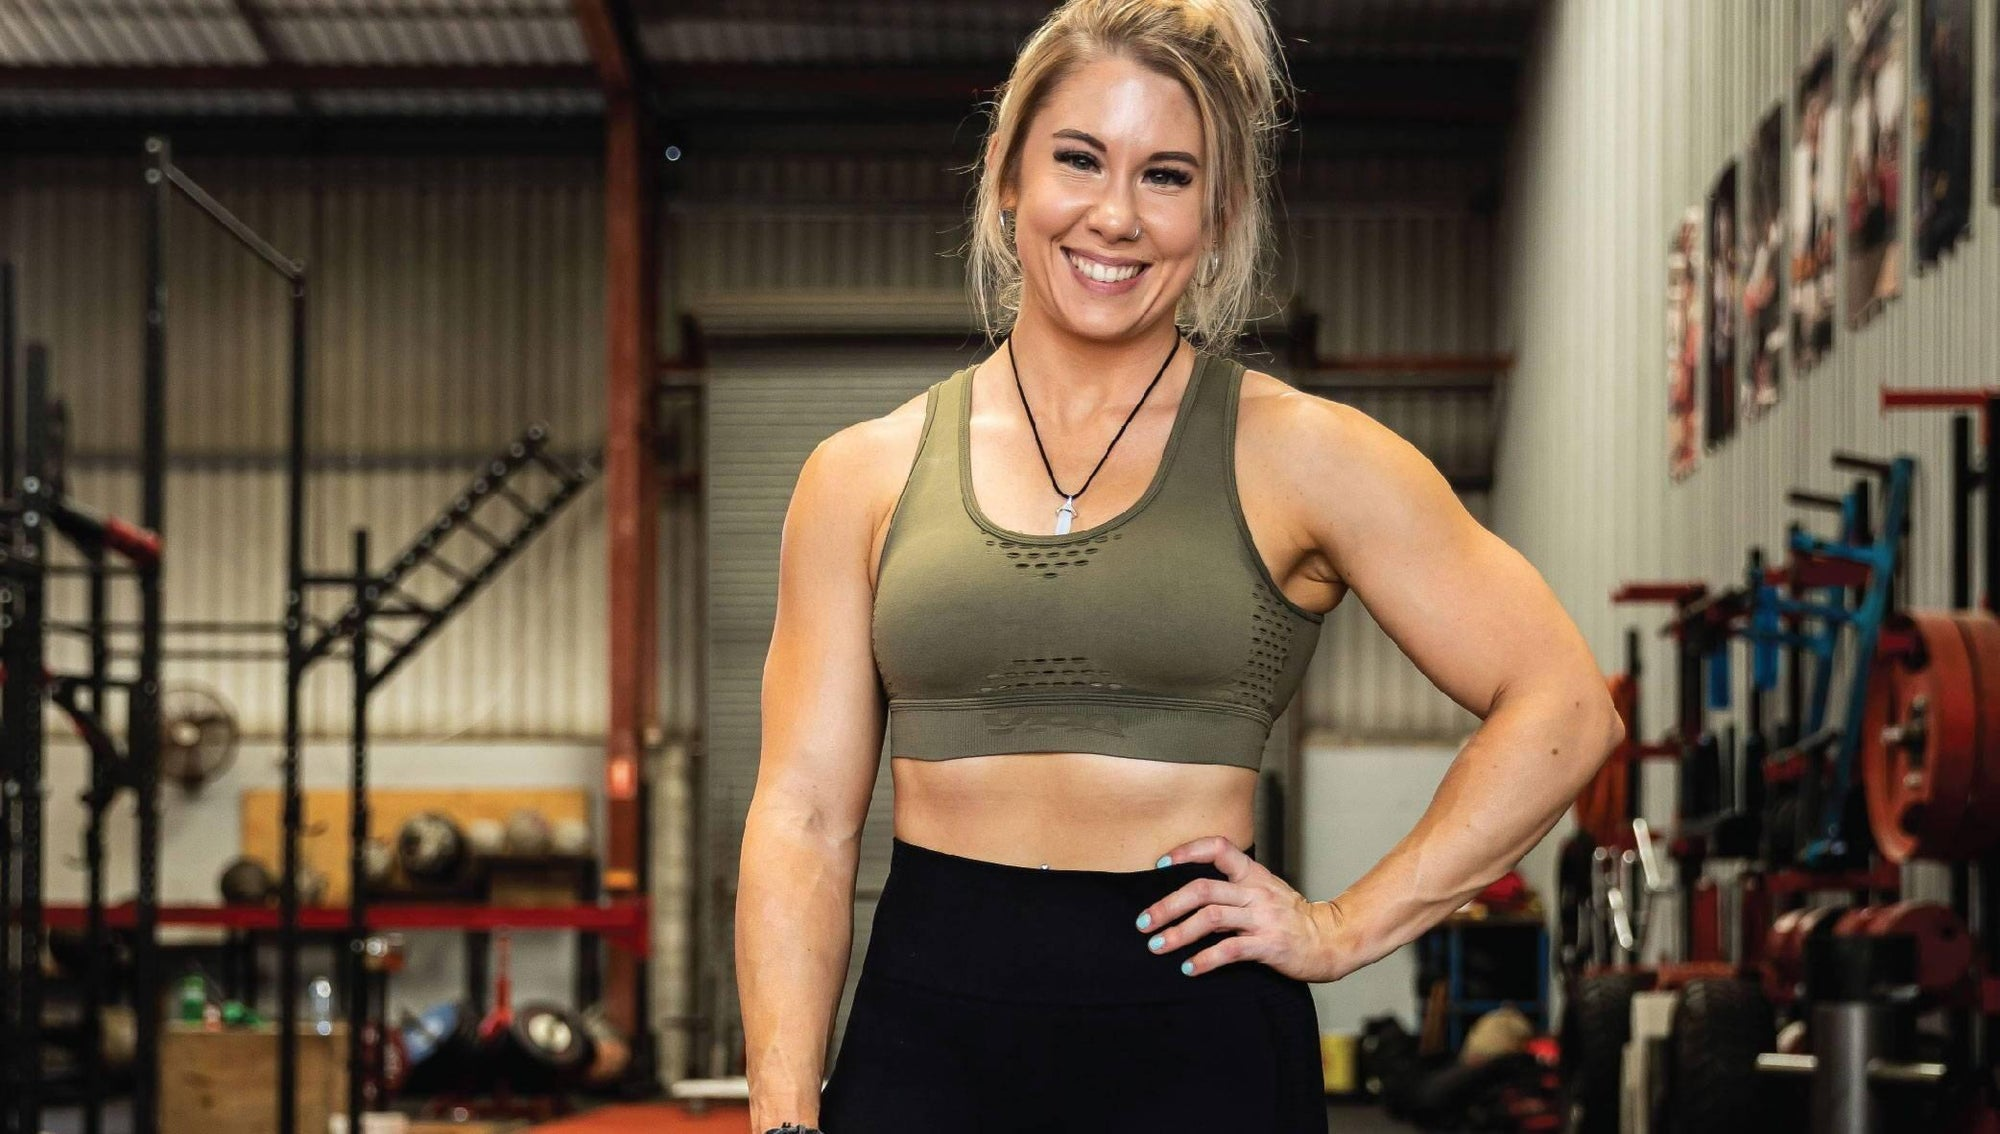 Raissa Vogler: Strong Woman-VPA Australia